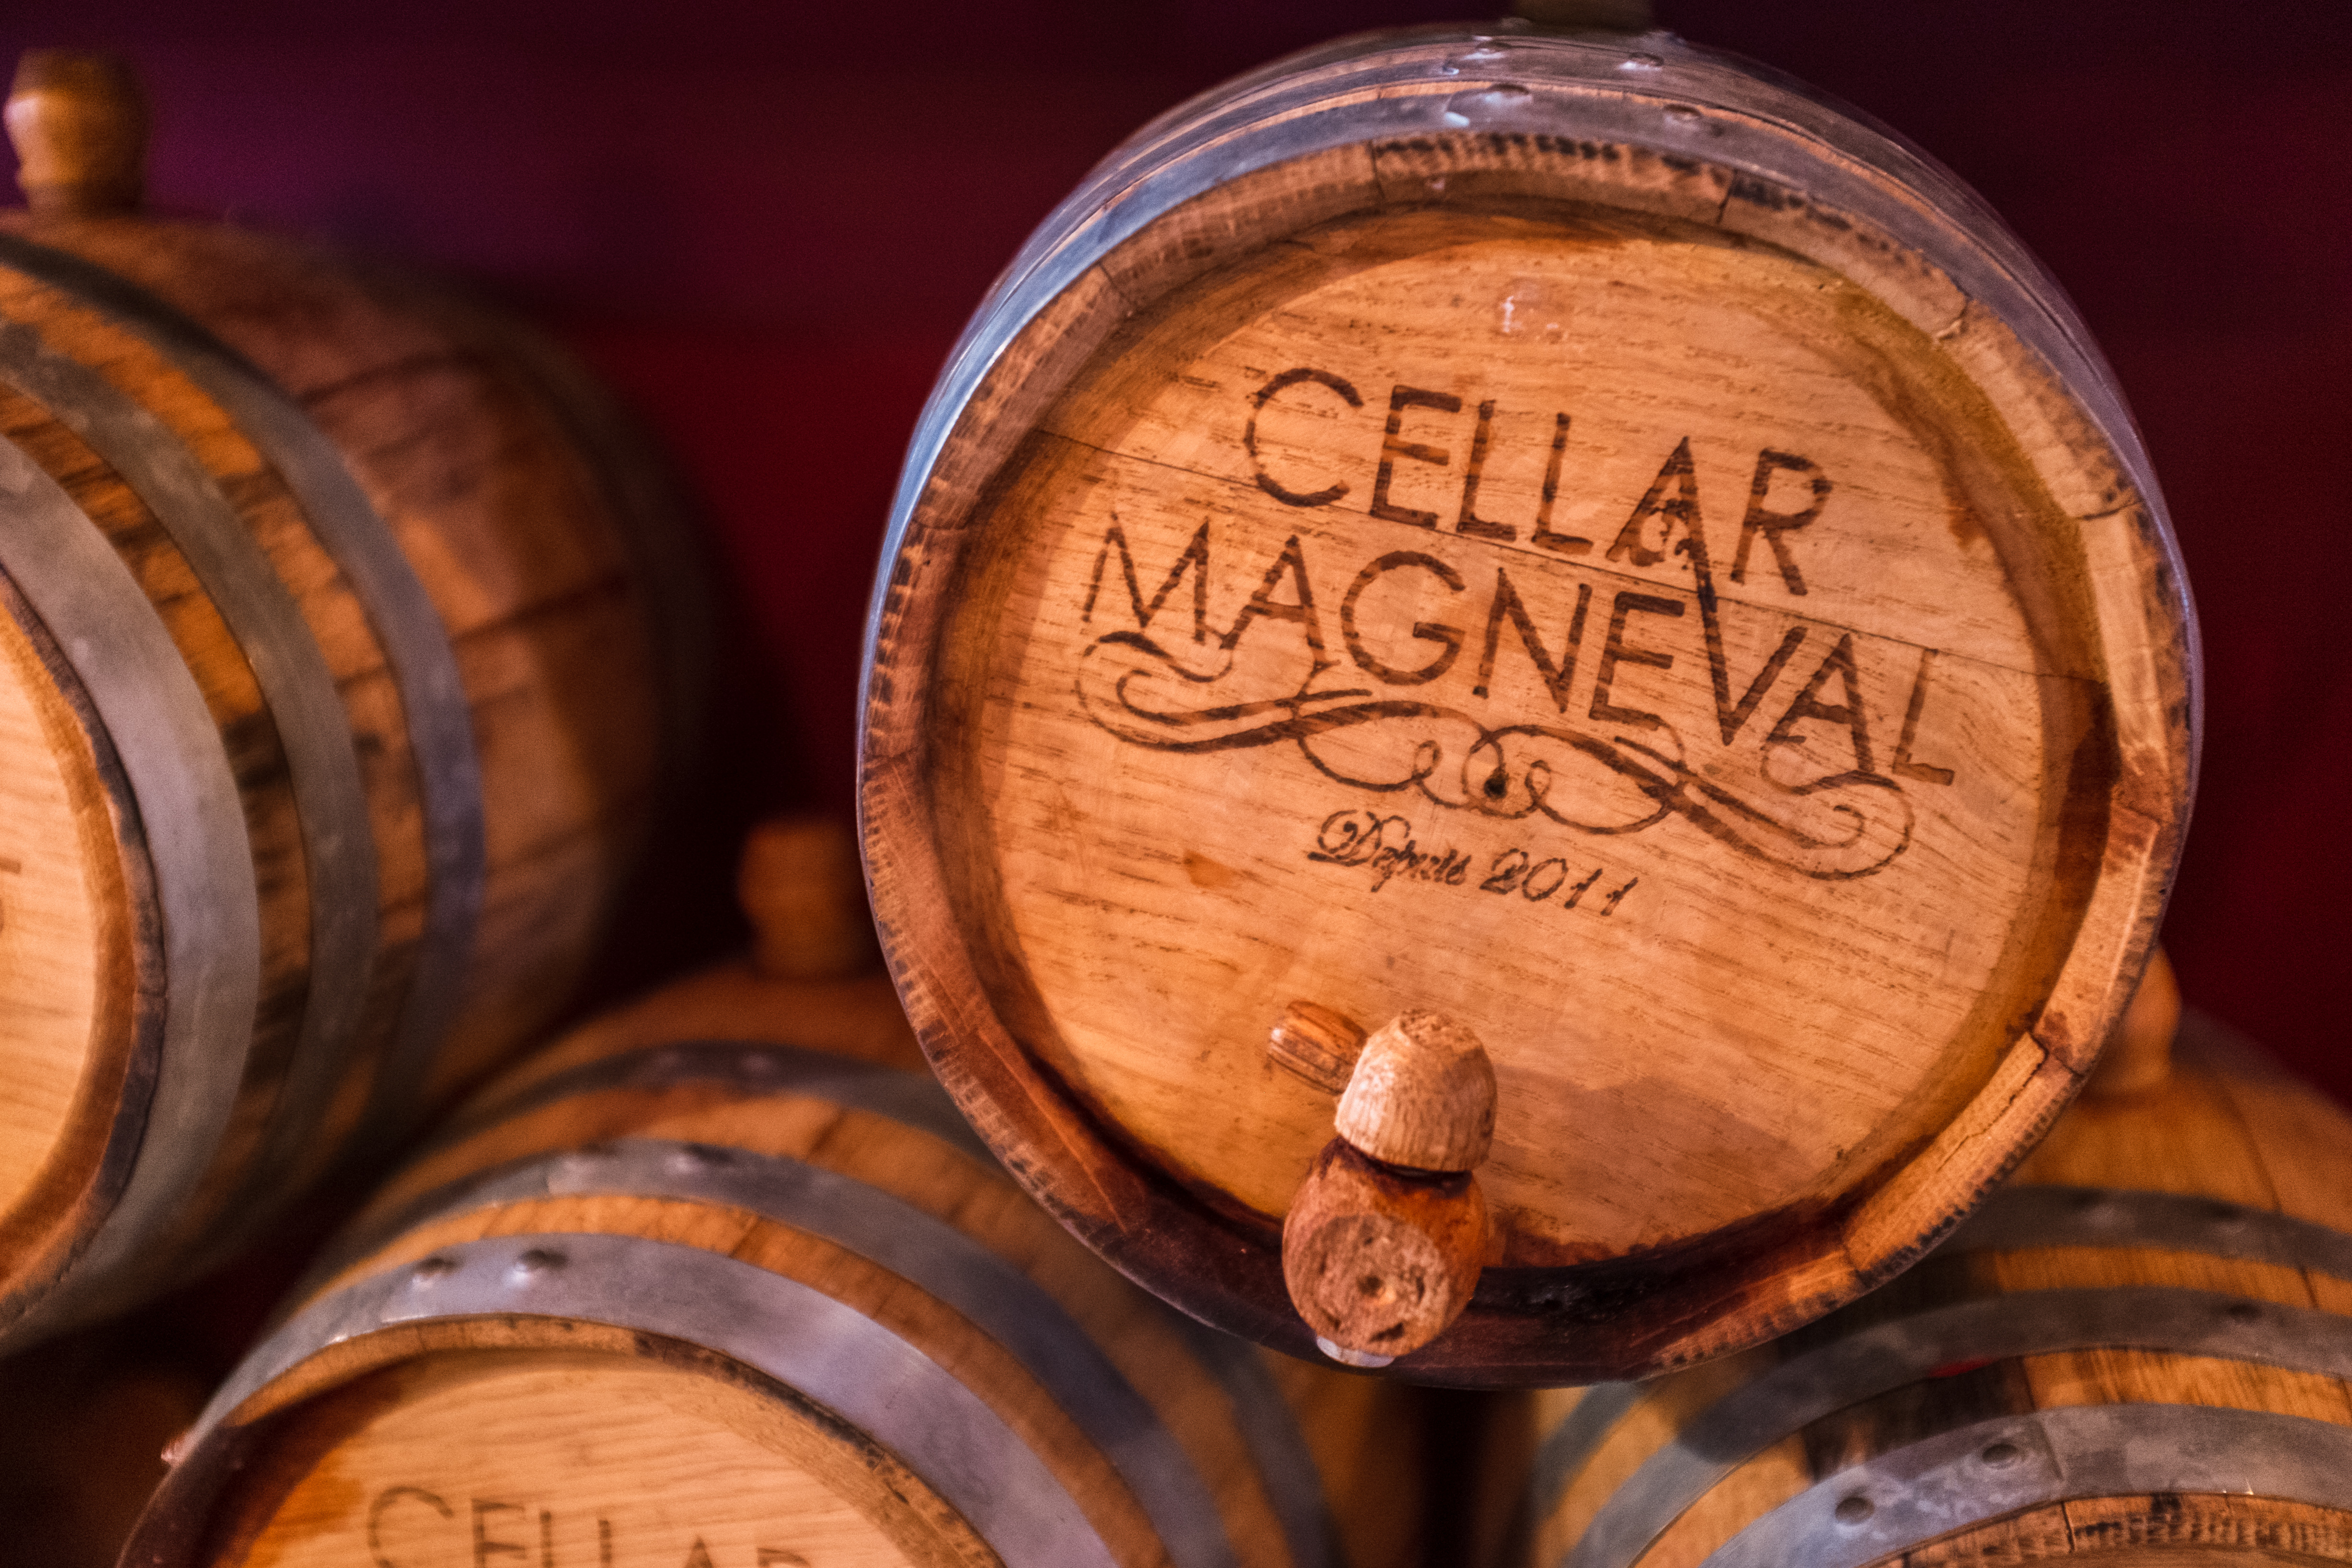 Cellar Magneval at Home